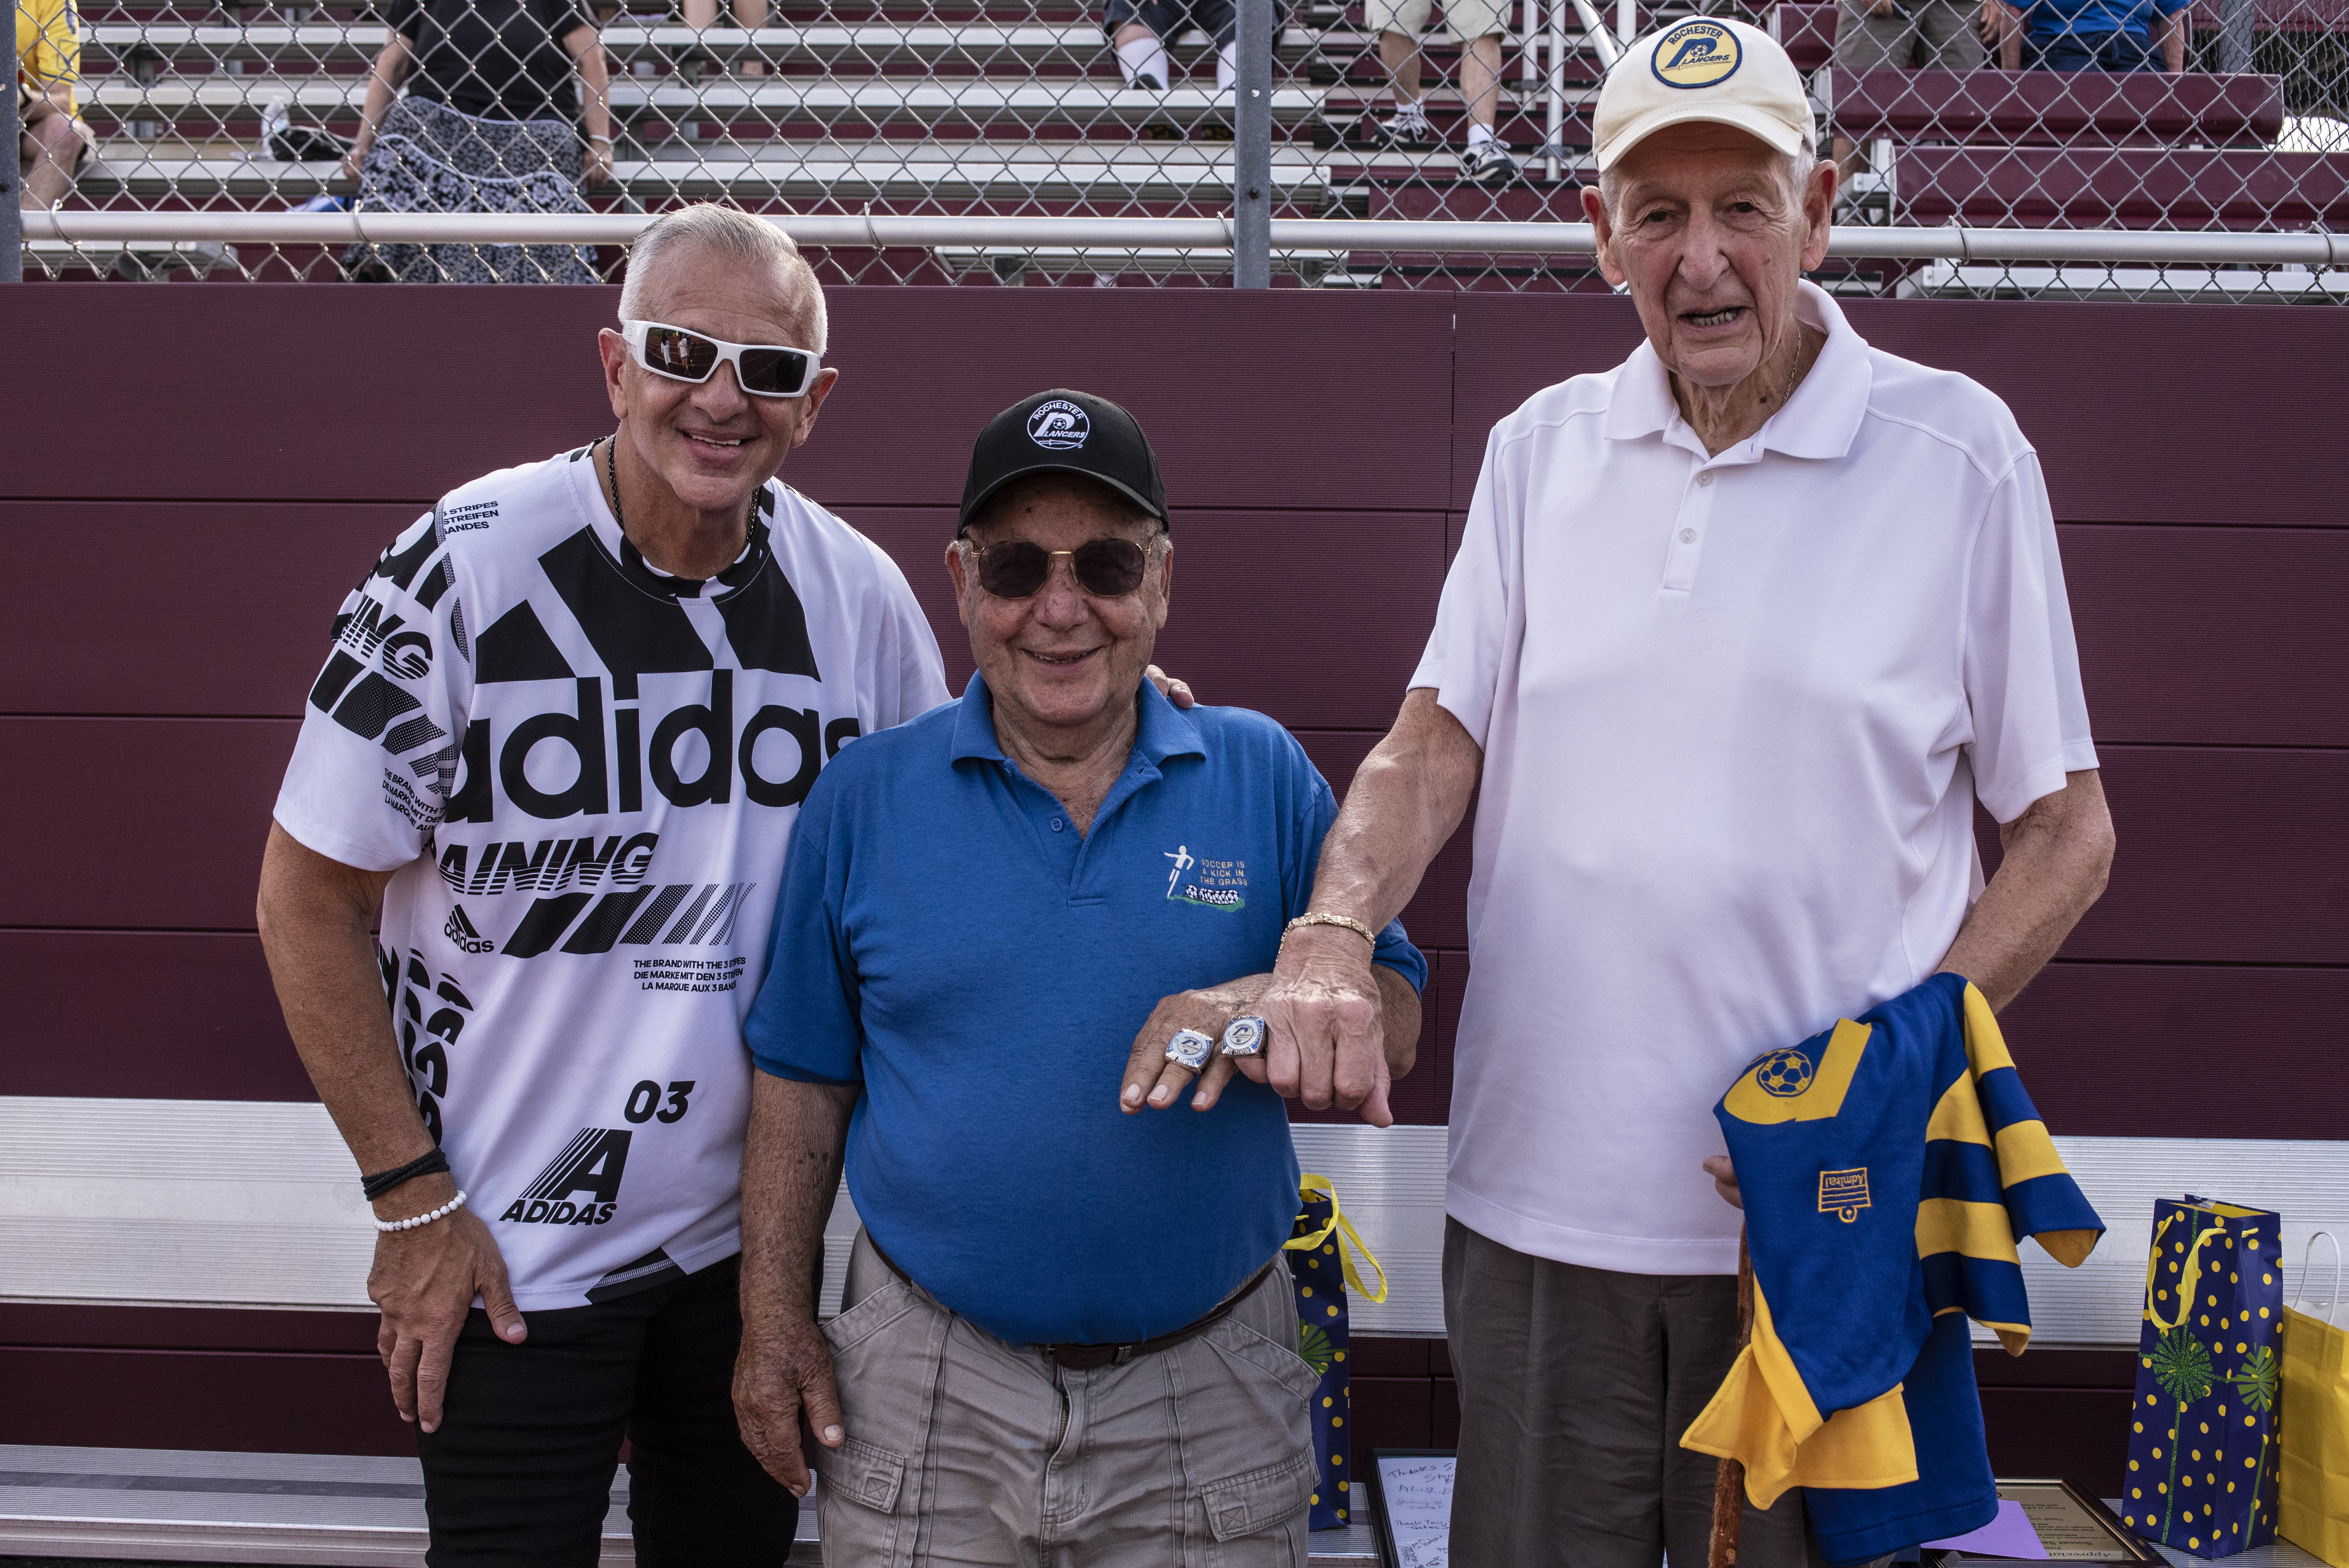 SURPRISE!: Former Lancers owner Schiano, Sirianni are presented 1970 championship rings